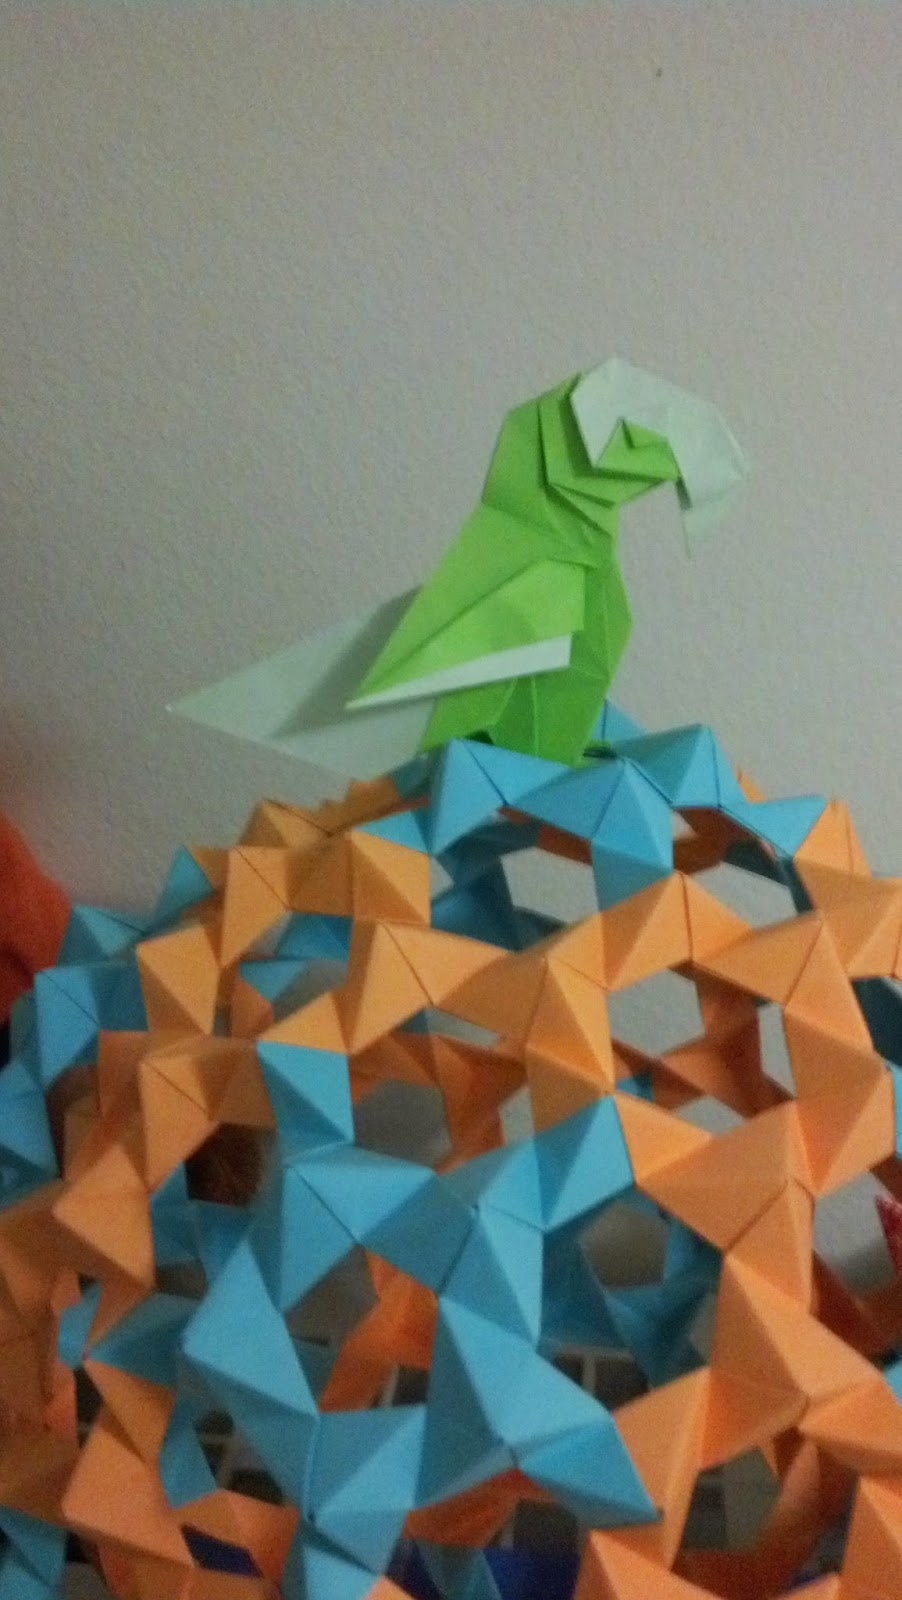 Ohgees Creations Origami Parrotdiagram By Barth Dunkan Ecorigami With A Parrot